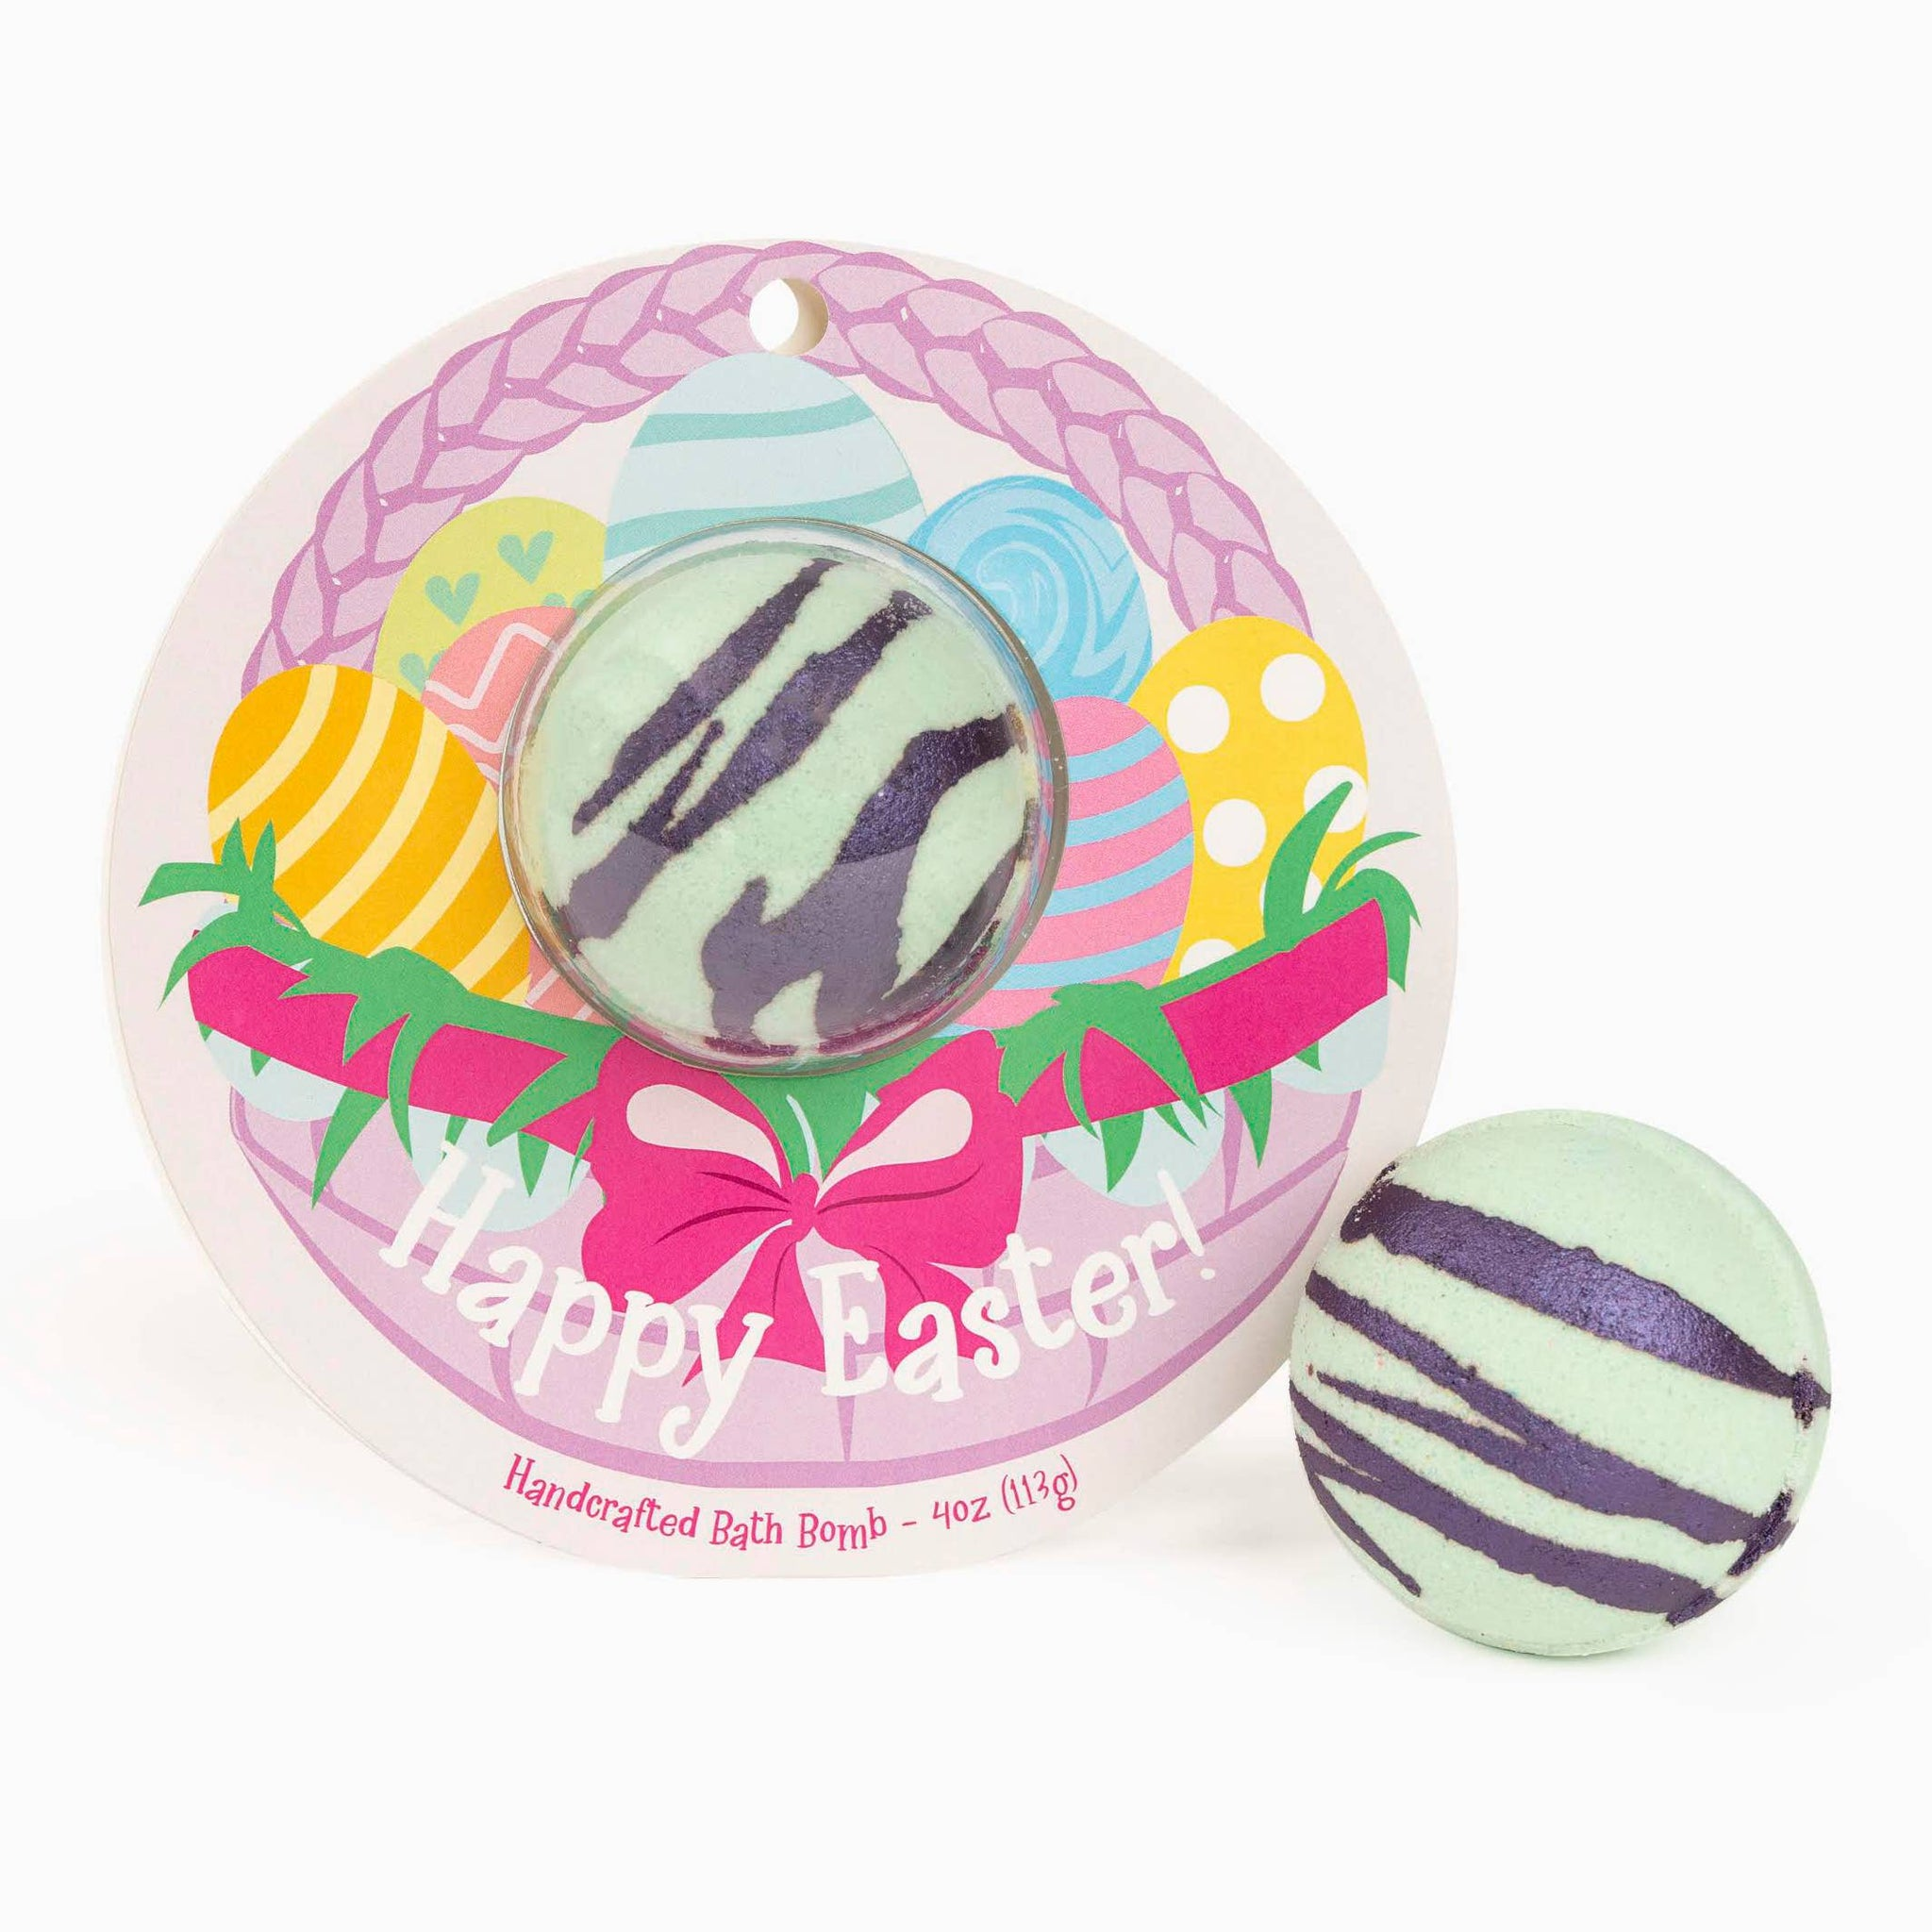 Happy Easter! Easter Basket Clamshell Bath Bomb